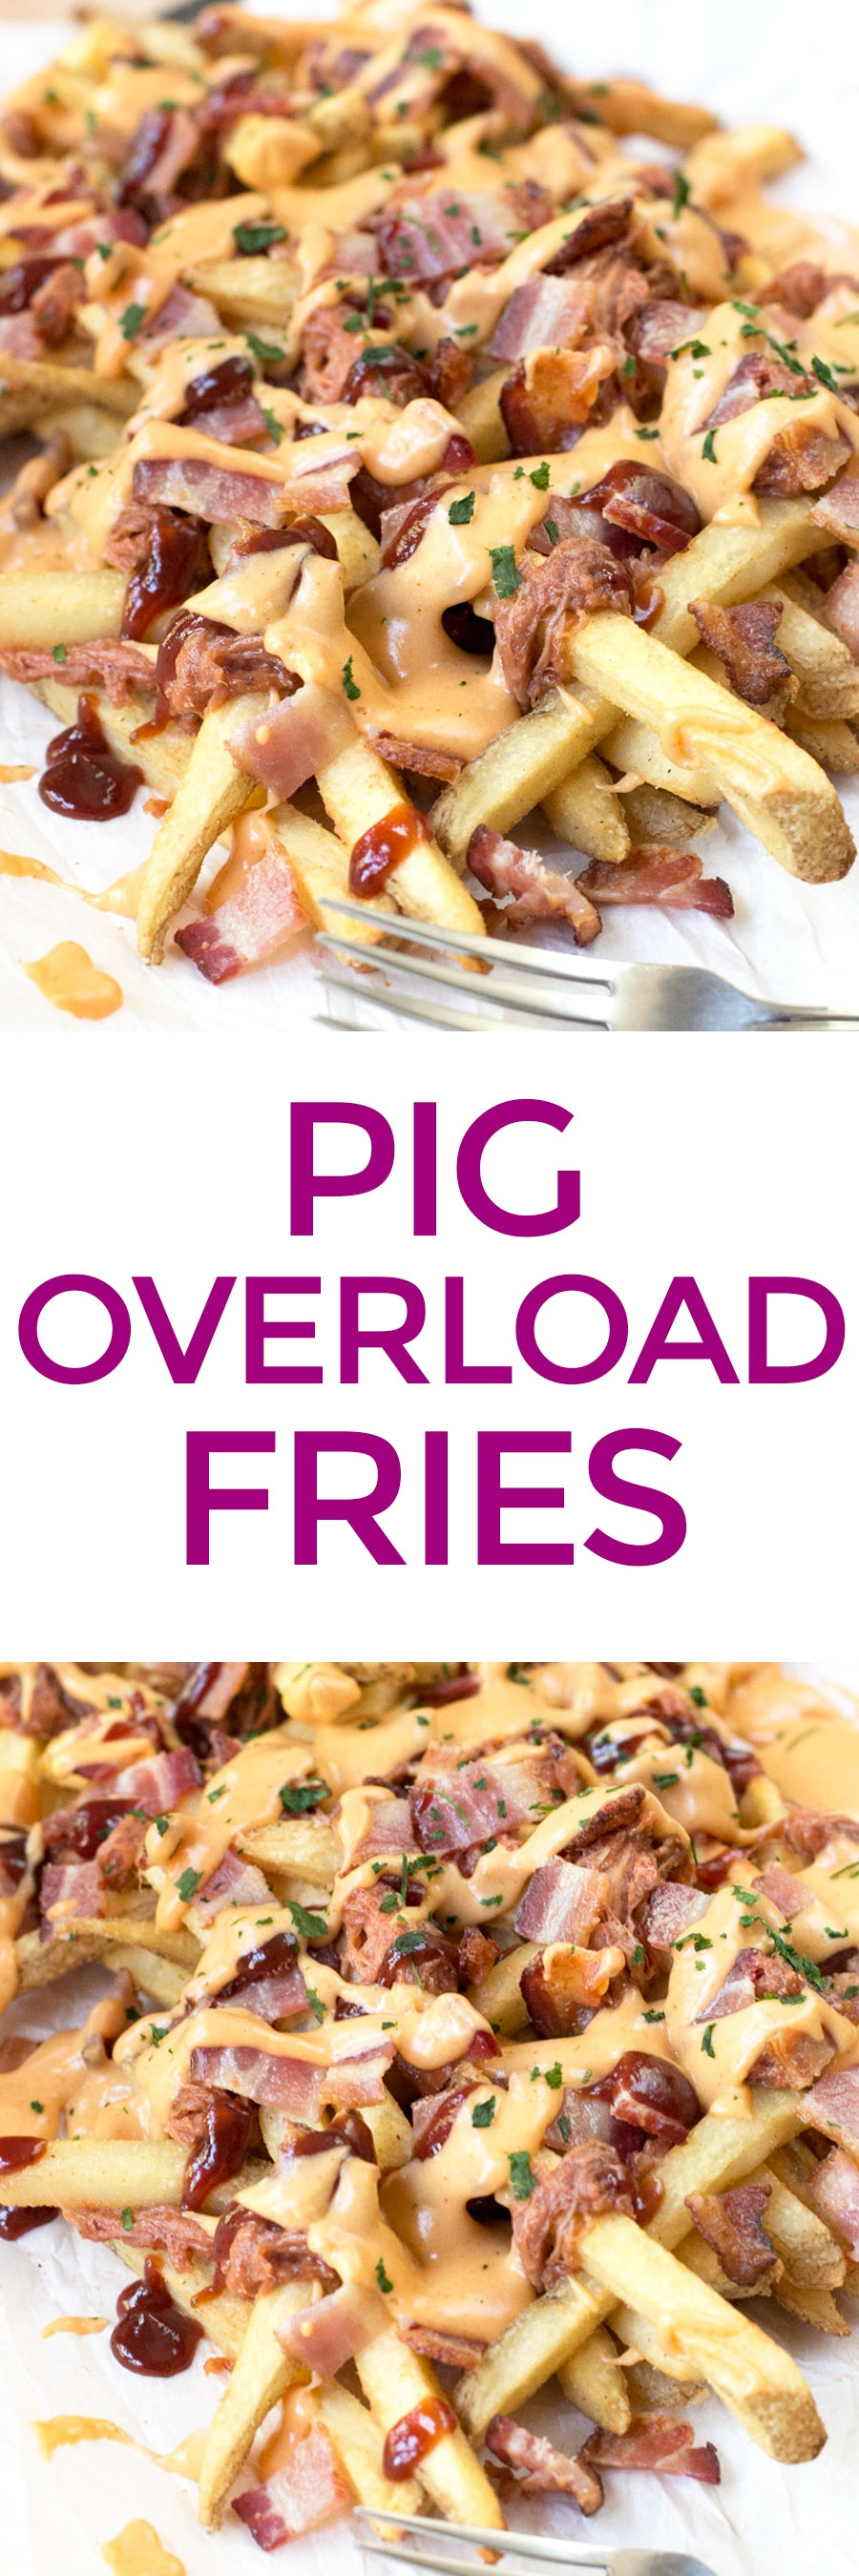 Pig Overload Fries | pigofthemonth.com #tailgating #pork #bacon #recipe